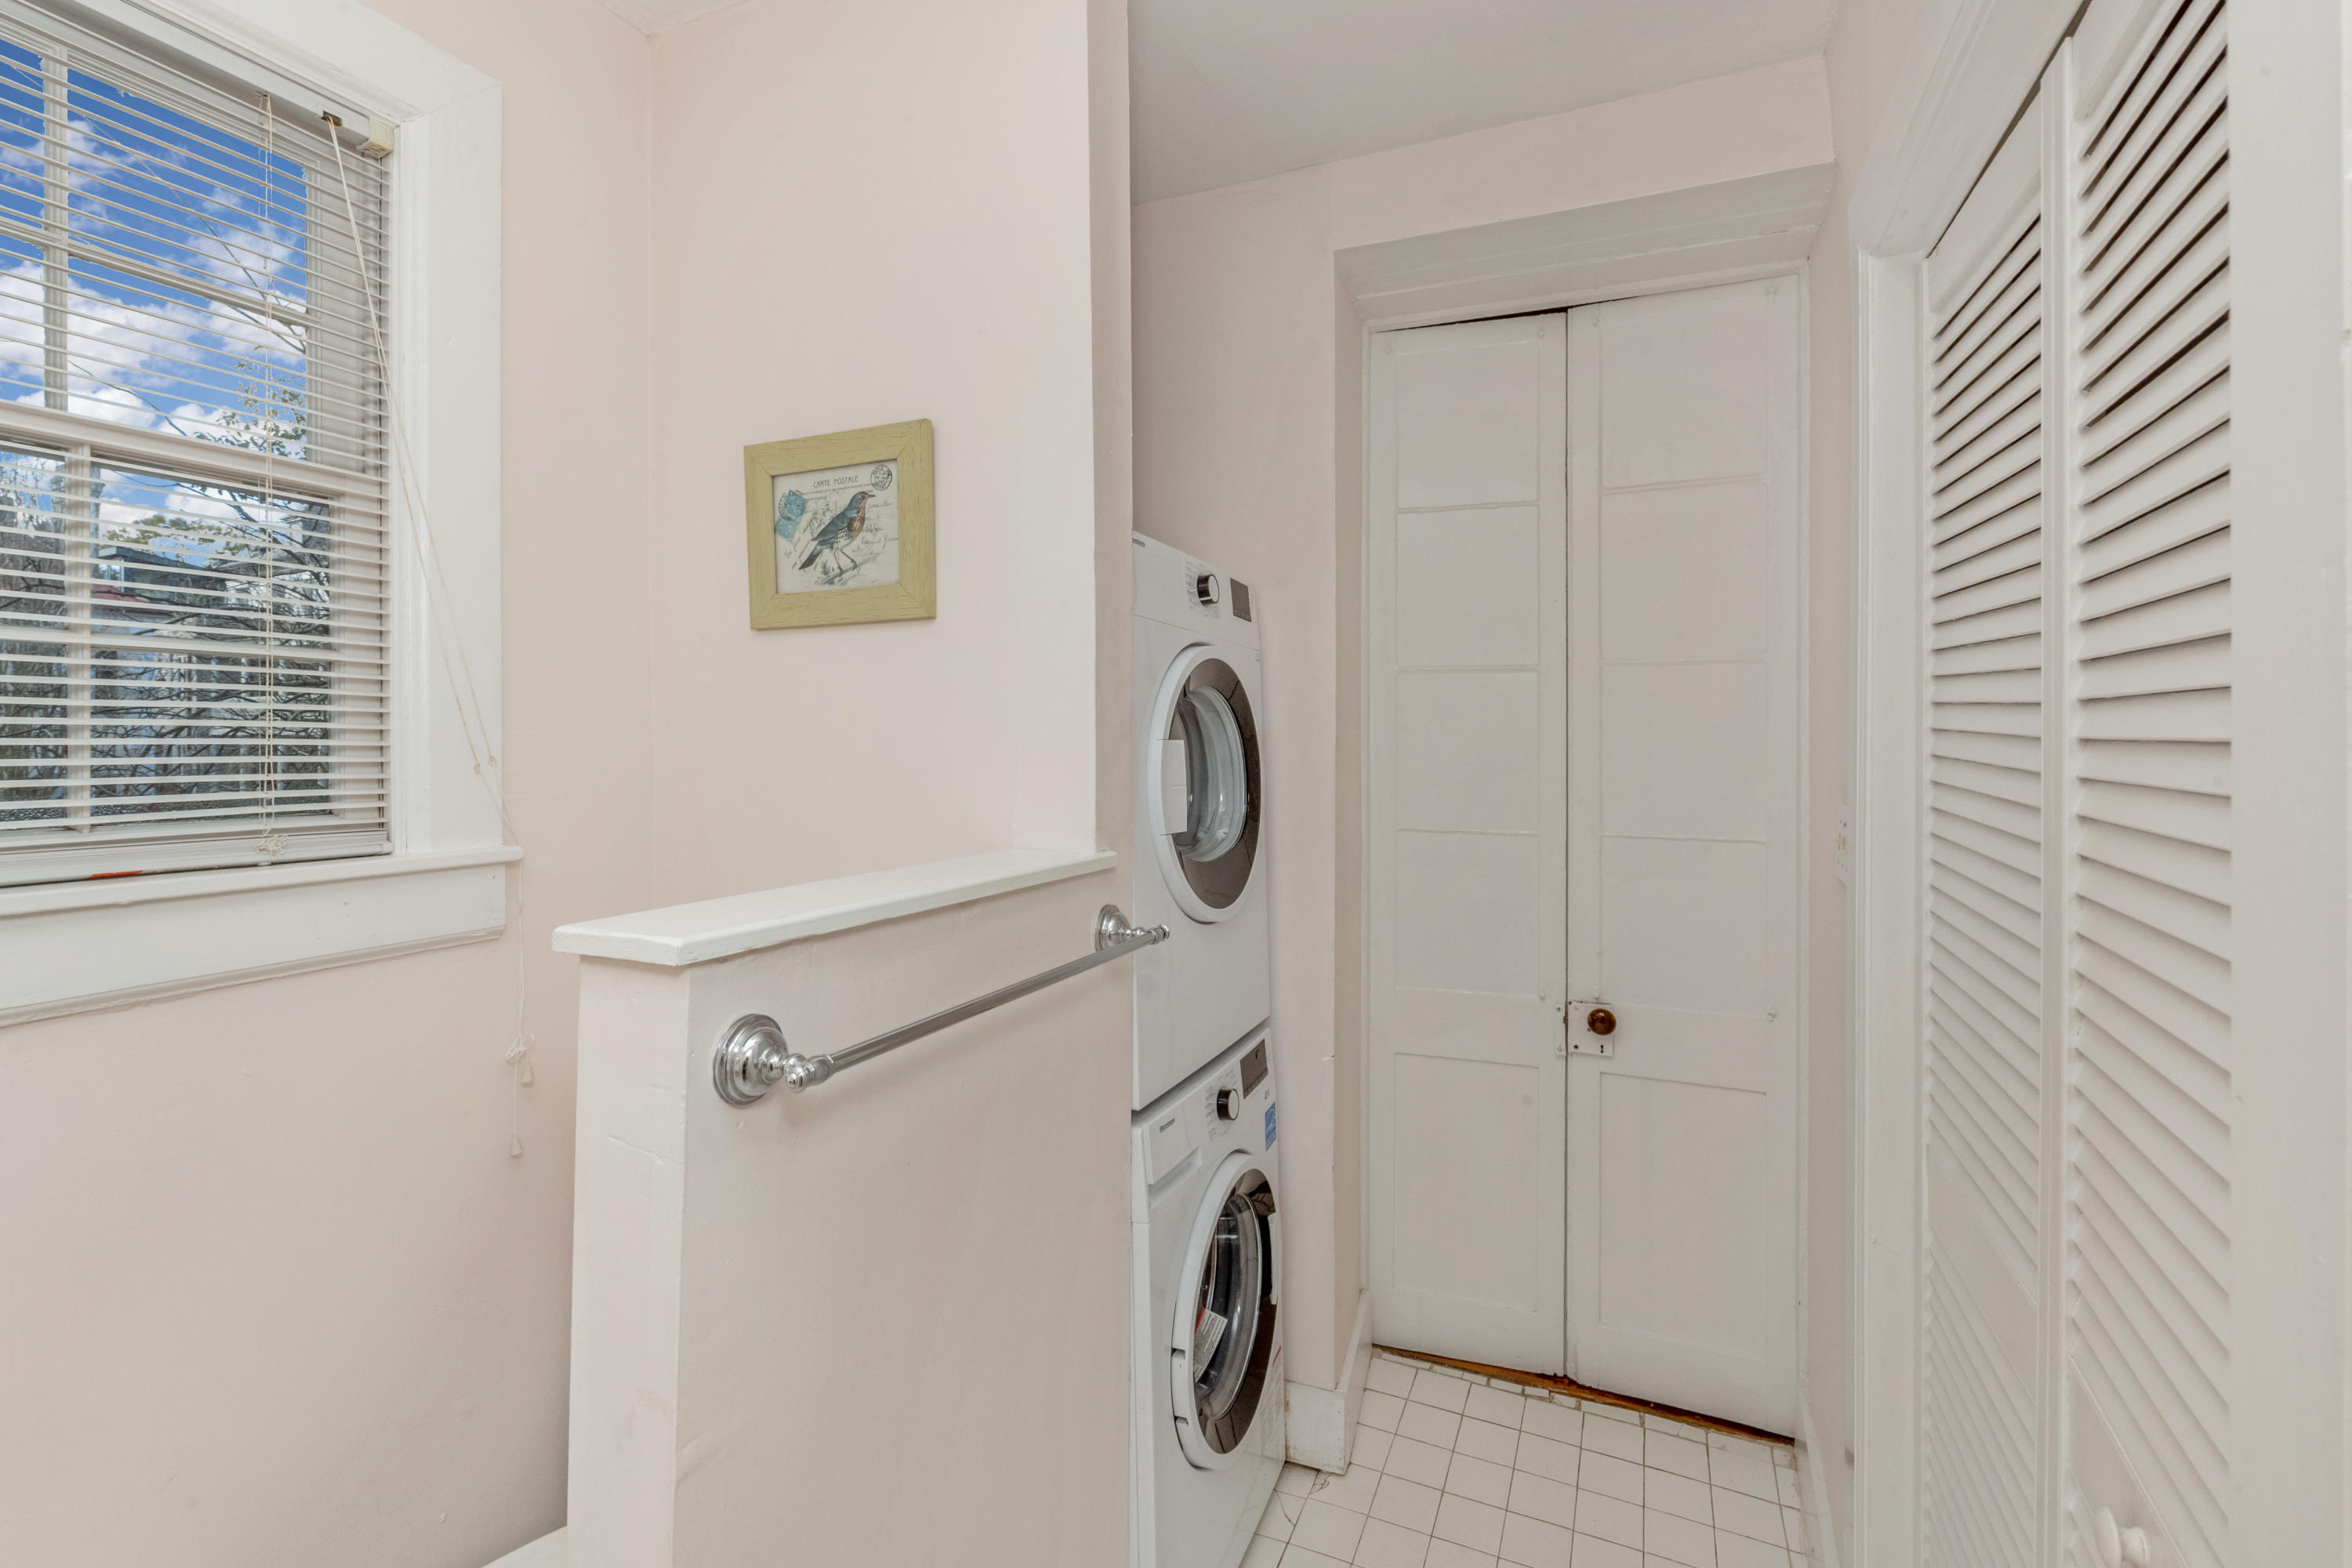 South of Broad Homes For Sale - 4 Weims, Charleston, SC - 33